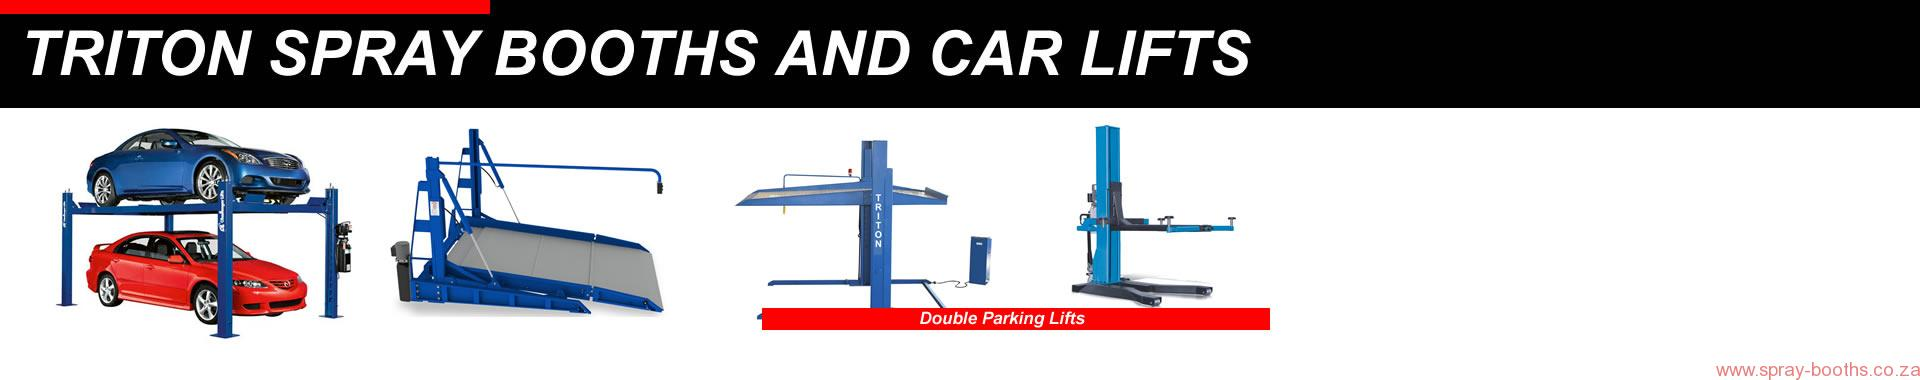 Double Parking Lifts Suppliers Triton car lifts 2 post hoist 021 5562413